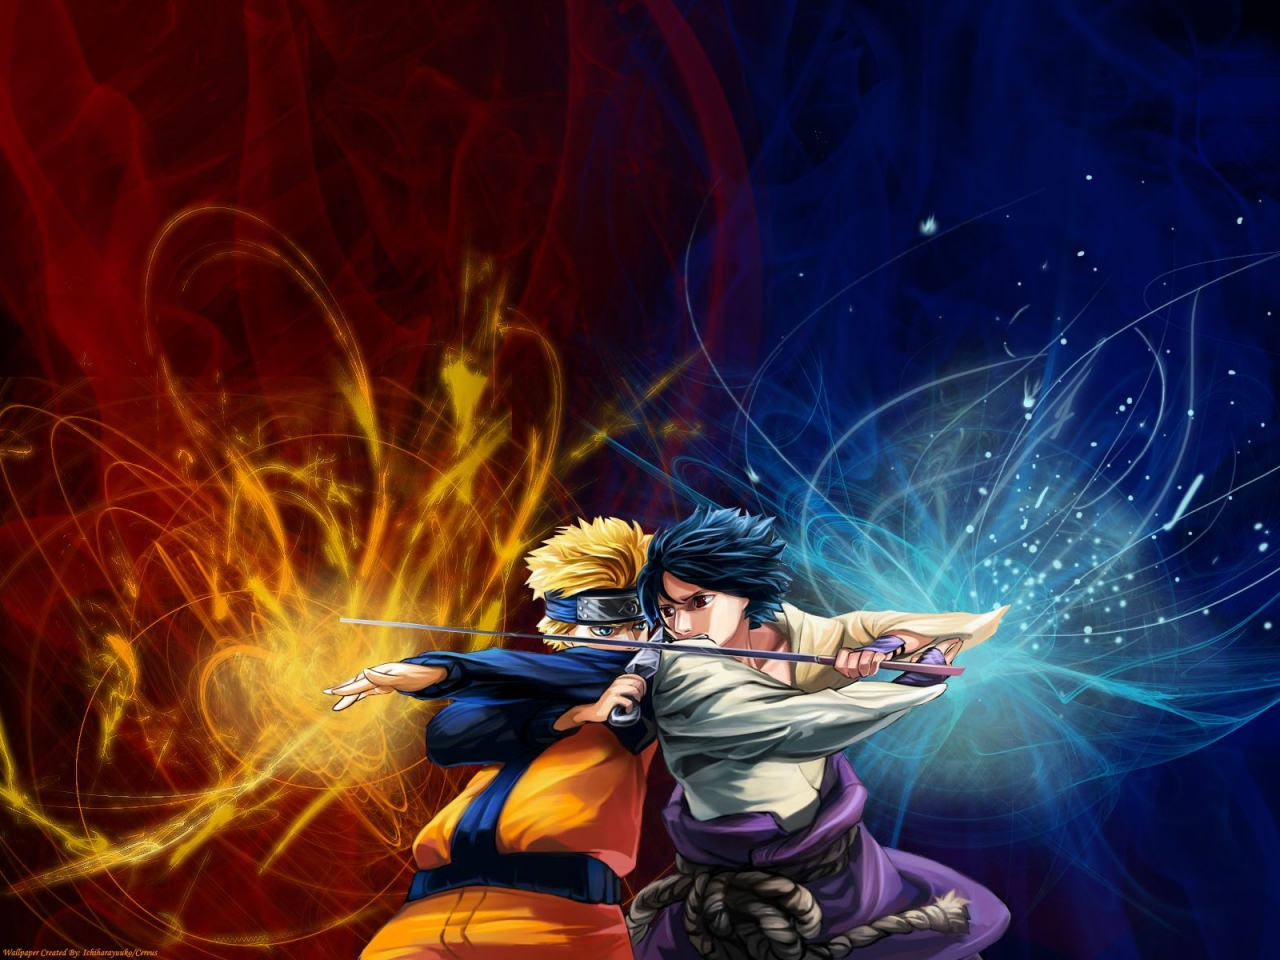 WallpapersKu: Naruto